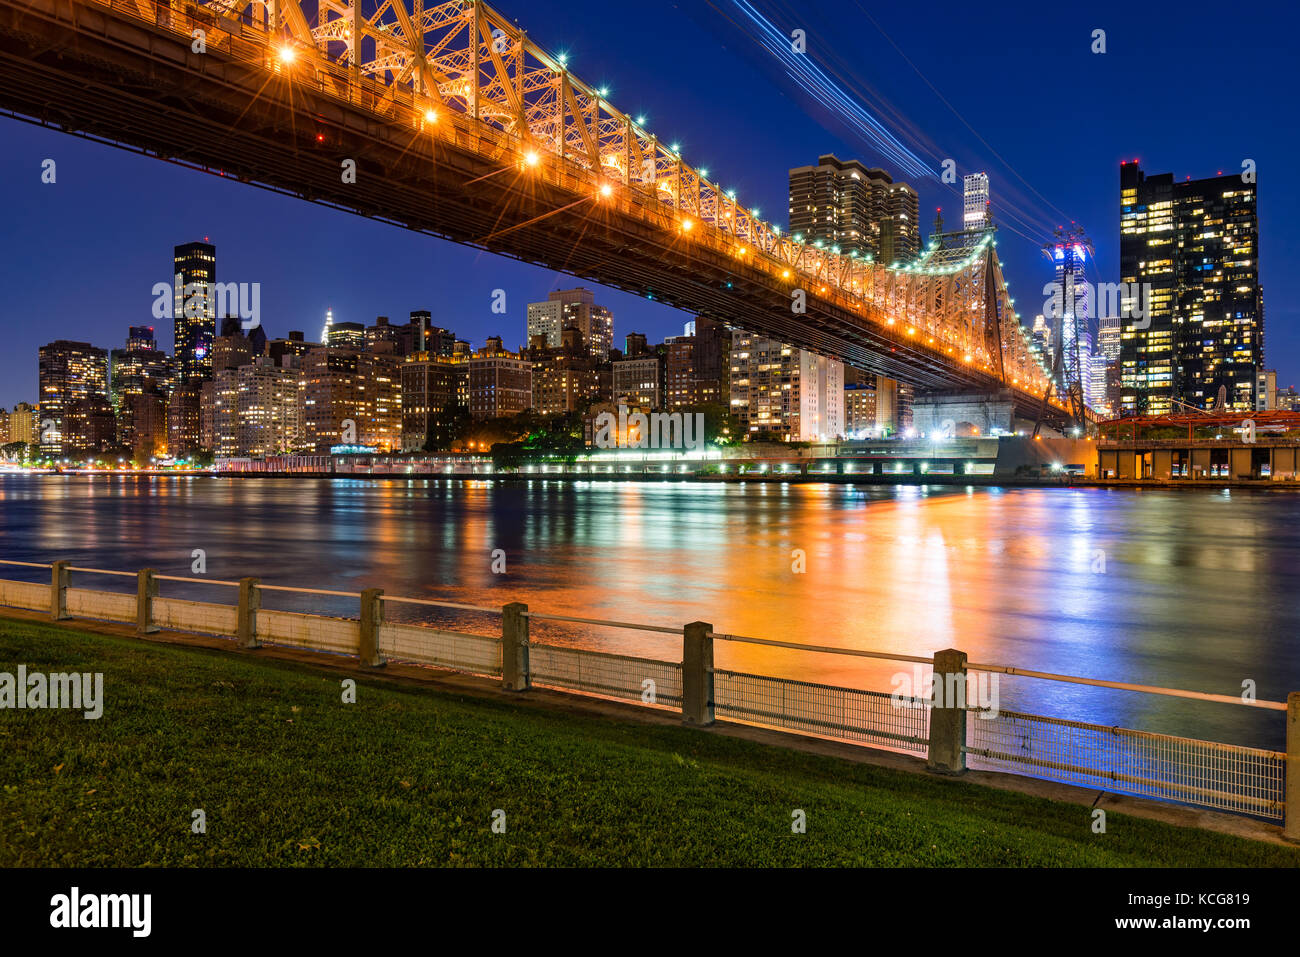 Am Abend Blick auf Manhattan Midtown East von Roosevelt Island mit der Queensboro Bridge. New York City Stockbild